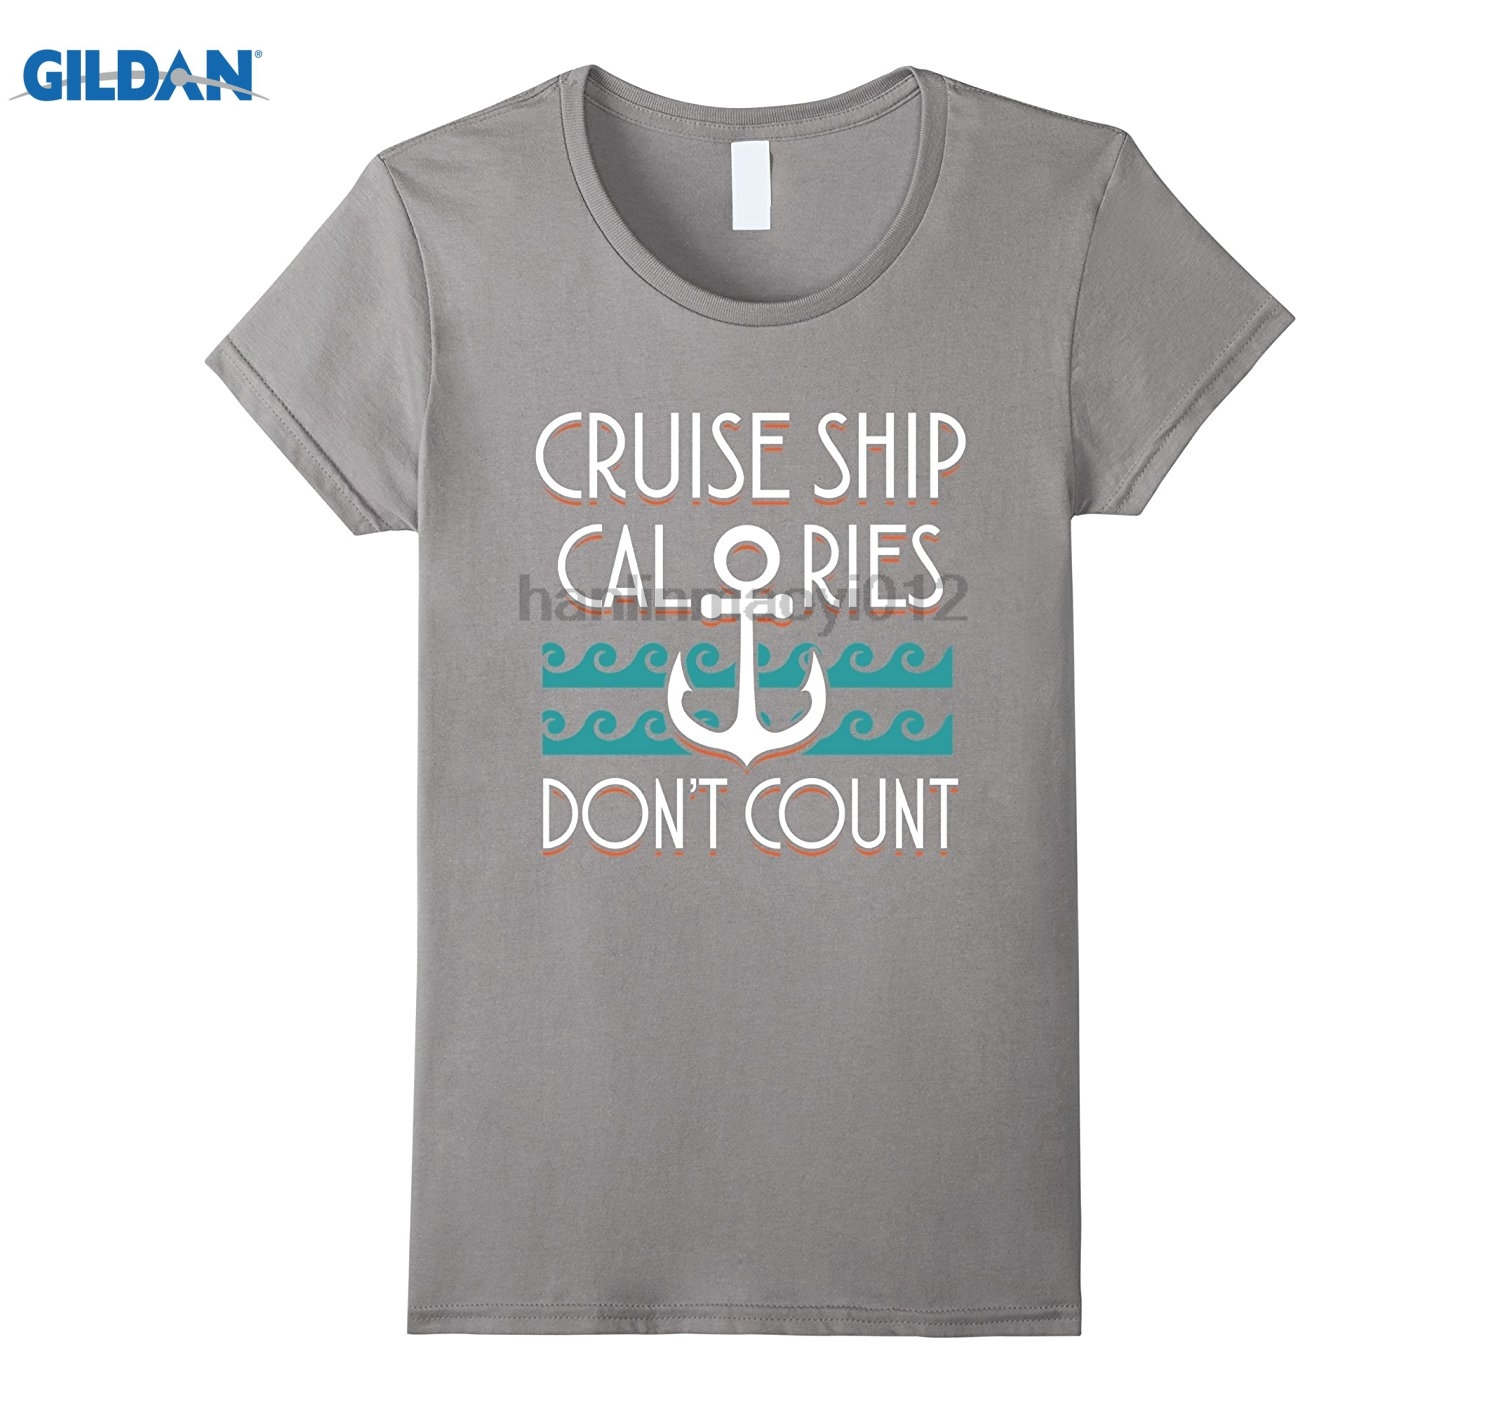 GILDAN Cruise Ship Calories Dont Count Funny T-Shirt Womens T-shirt